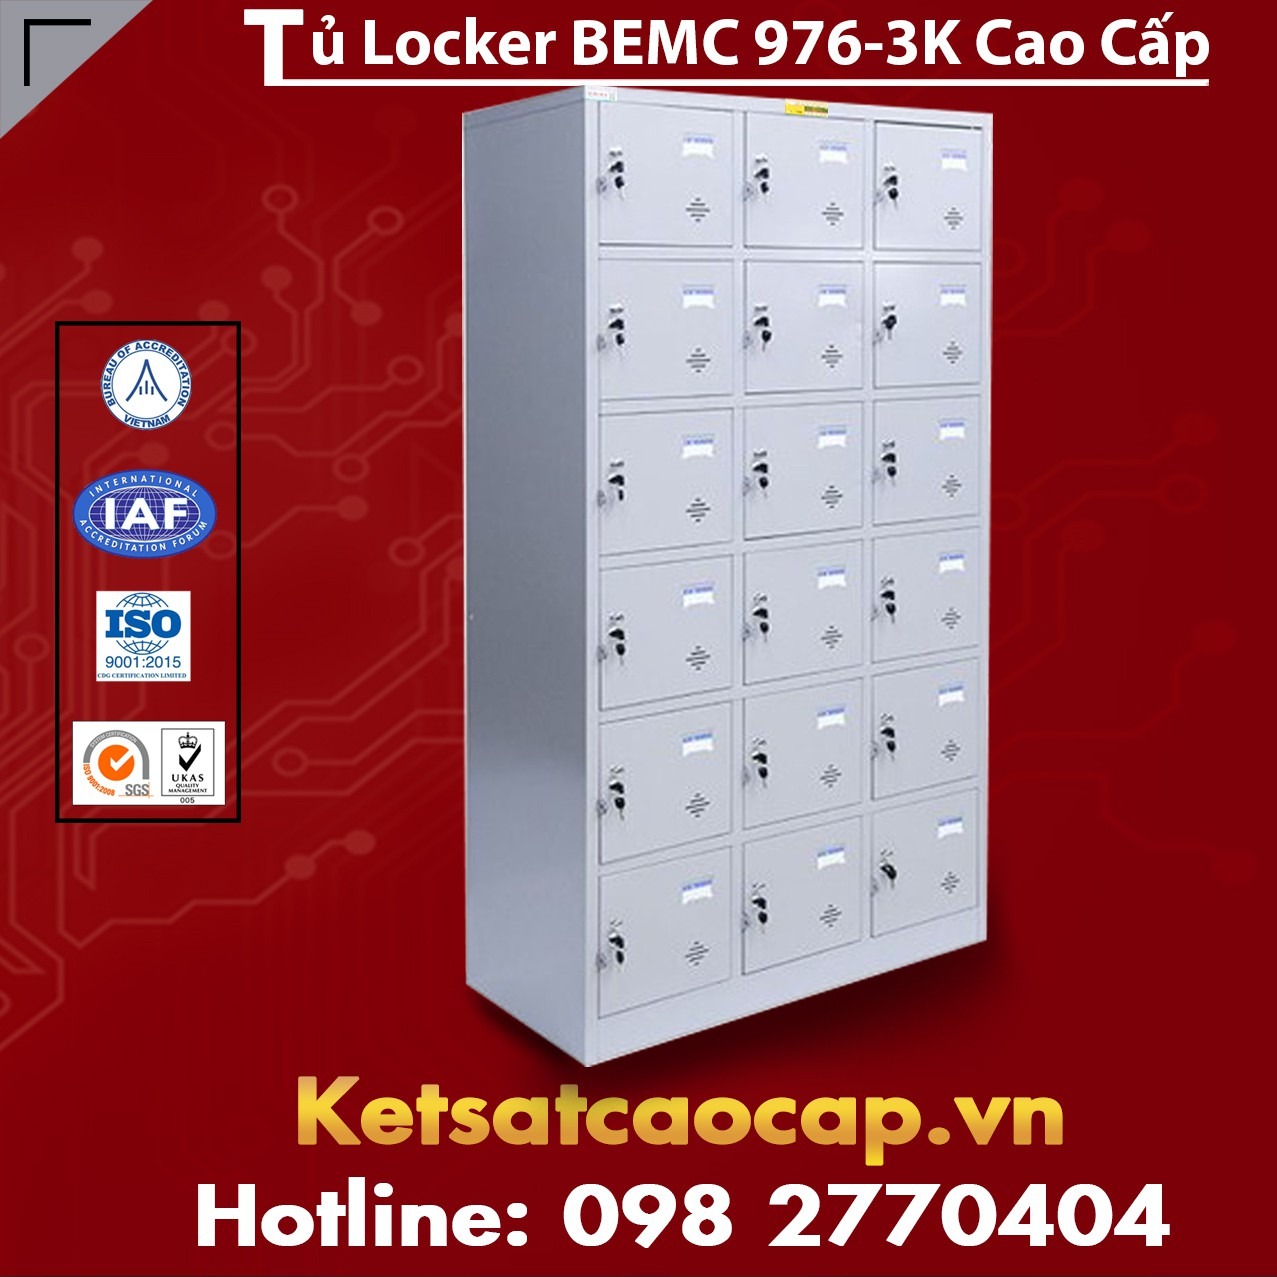 Tủ Locker BEMC 976-3K 1